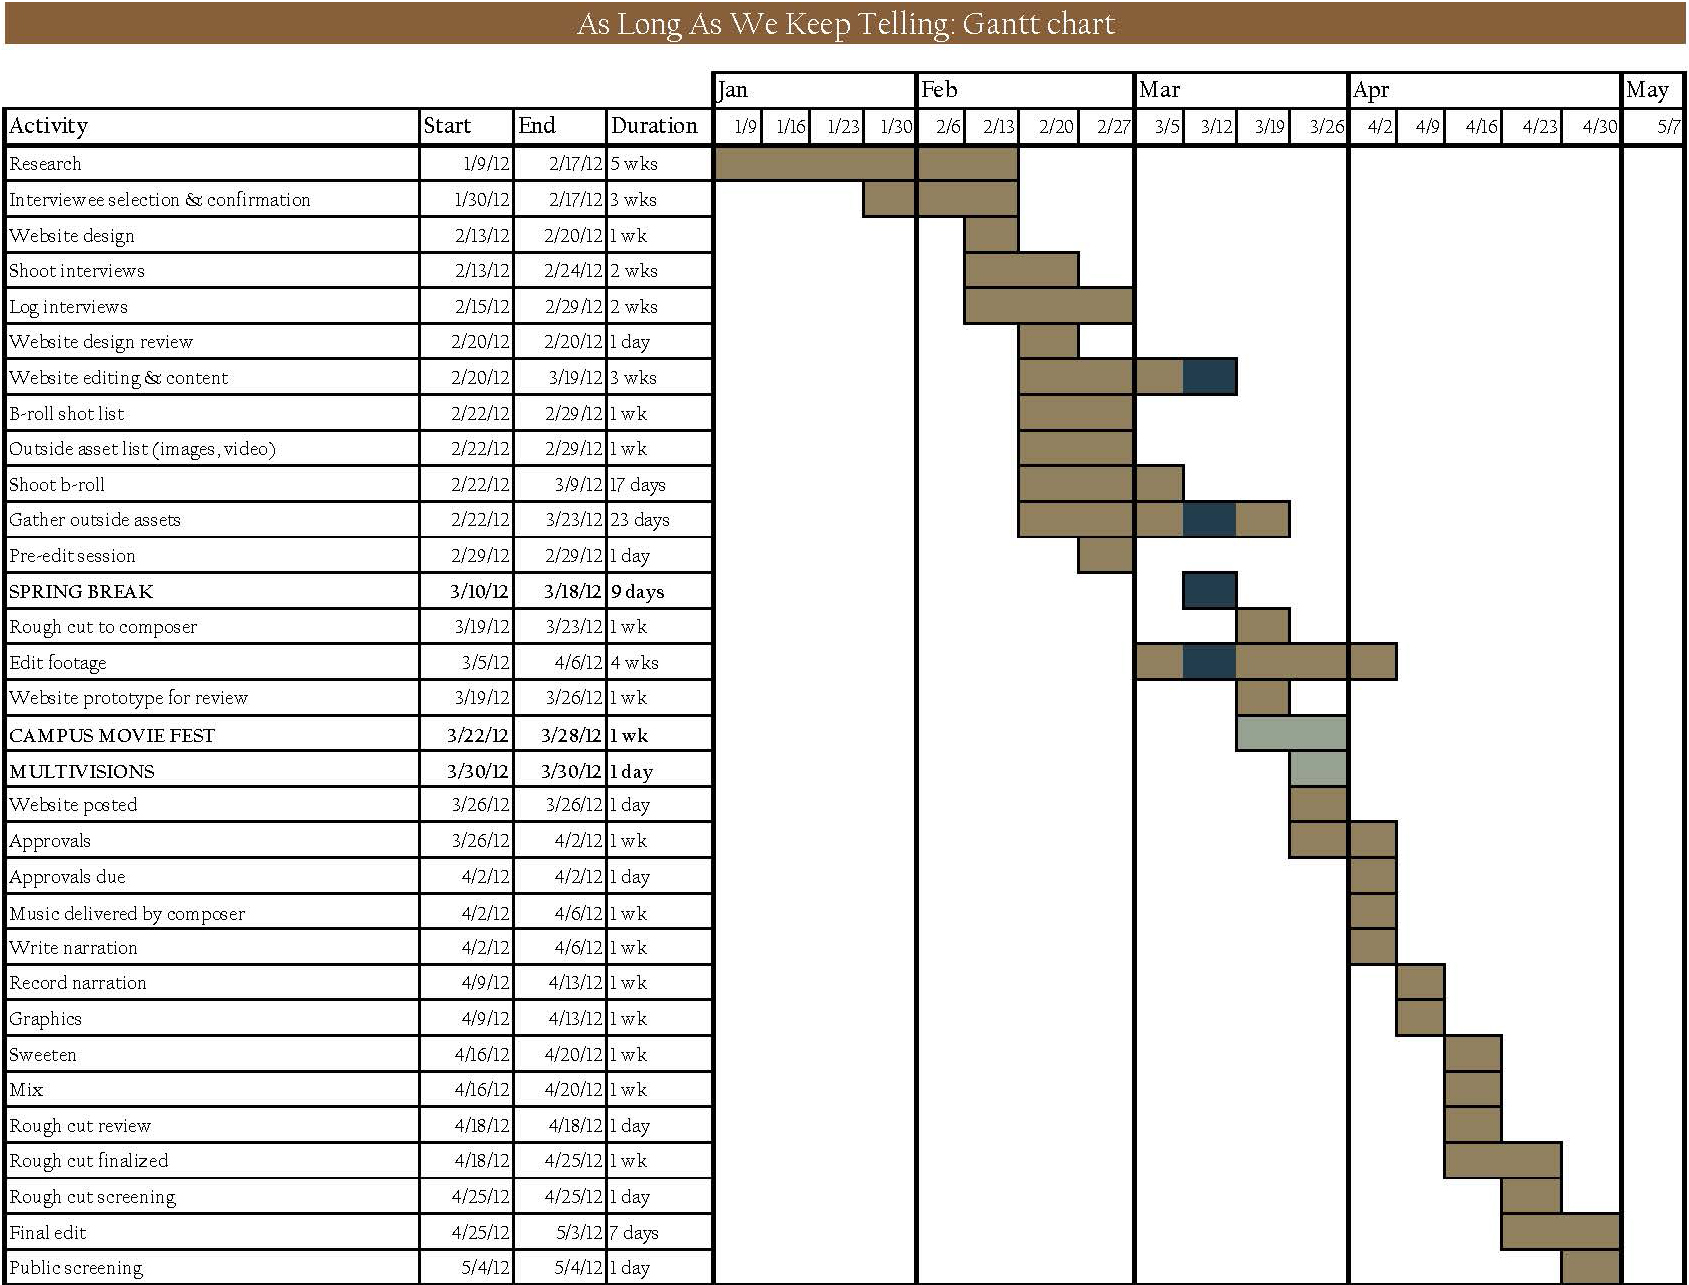 Gantt chart depicting production timeline